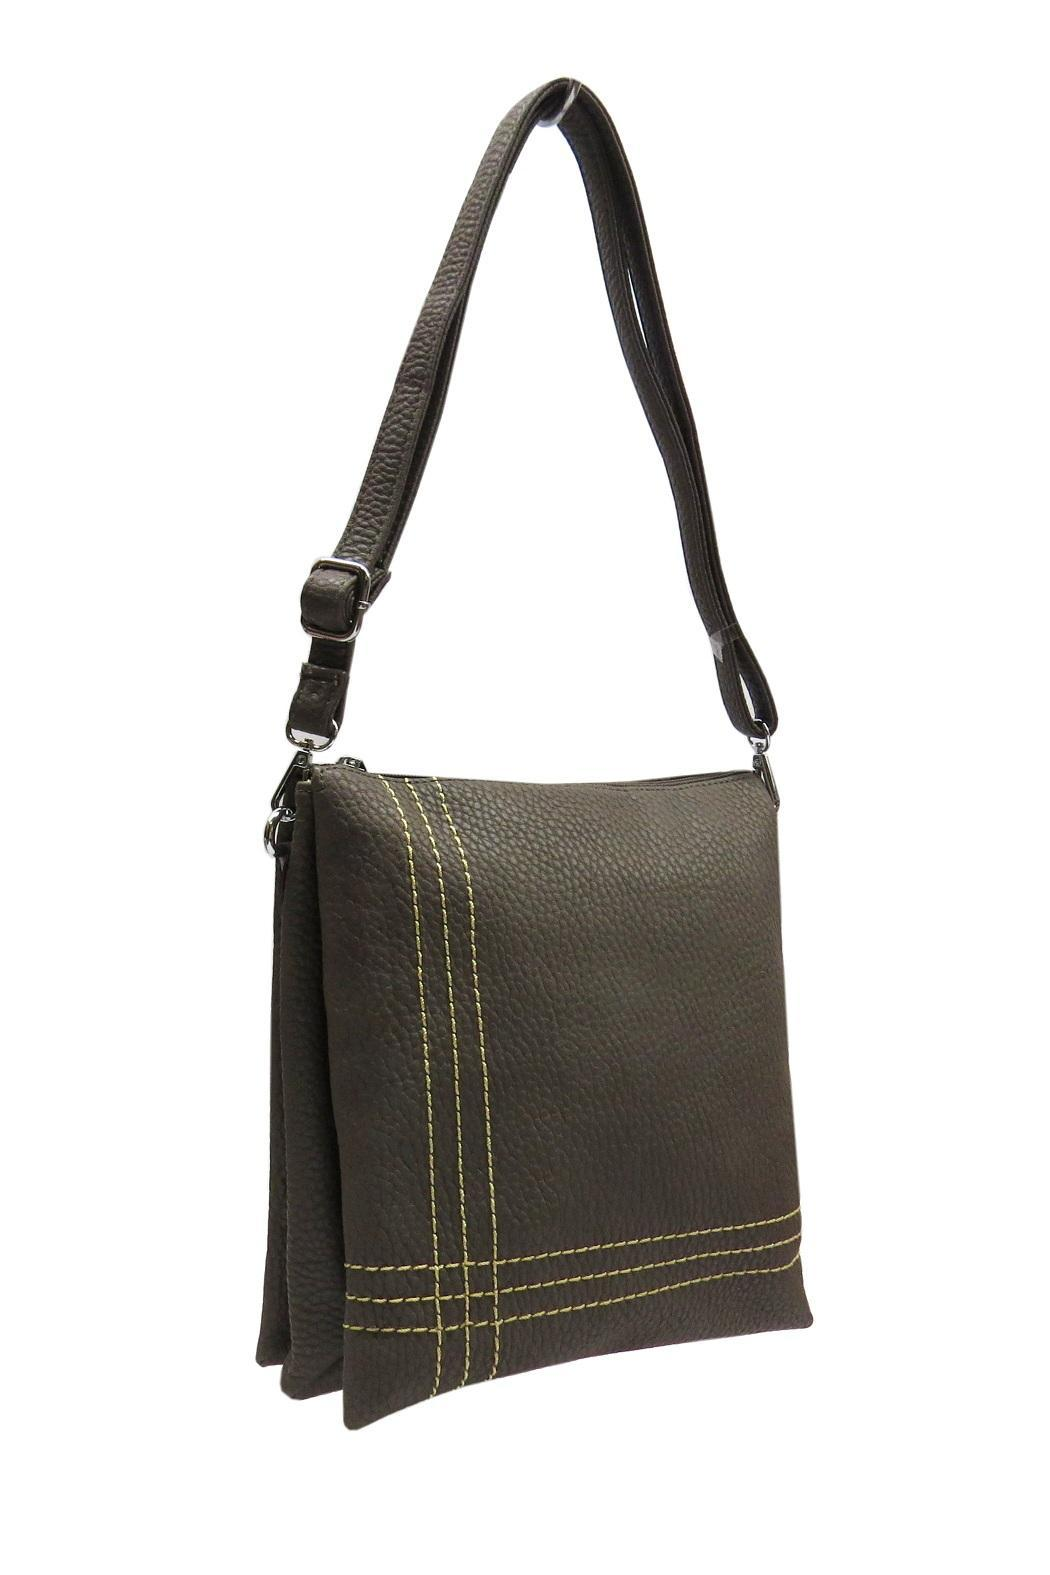 MP22 tote Three Pocket Purse - Main Image